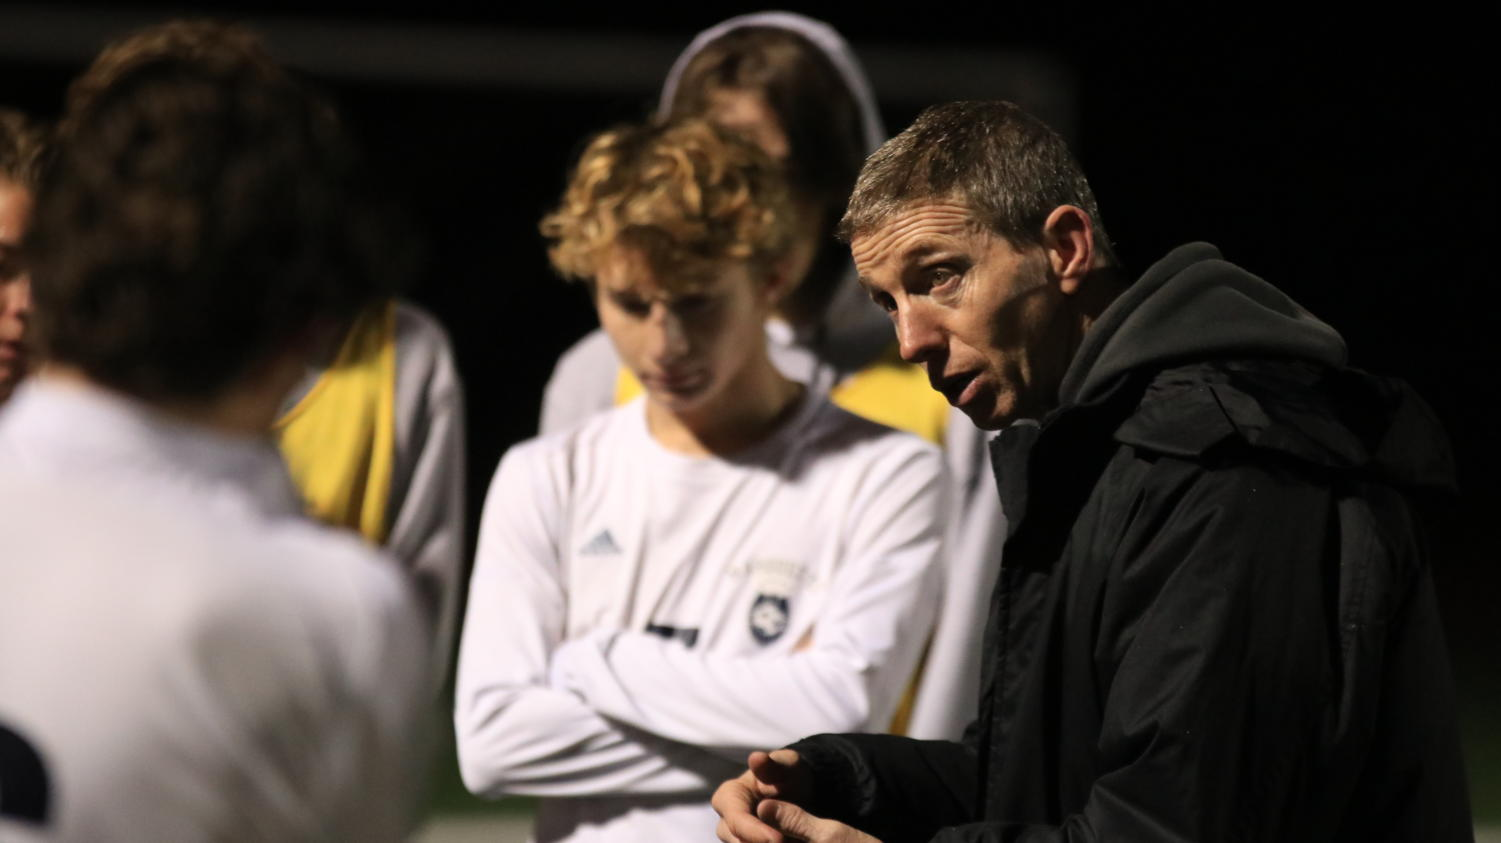 Chris+Kenny%2C+varsity+boys+soccer+head+coach%2C+addresses+his+team+after+a+2-1+loss.+Kenny+encouraged+the+underclassmen+to+learn+from+this+season%2C+while+also+thanking+the+seniors+for+their+contributions+to+the+team.+%E2%80%9CWe+didn%27t+finish+the+chances+we+had%2C%E2%80%9D+Kenny+said.+%E2%80%9CBut+I+was+proud+of+them%2C+the+way+they+played+in+the+second+half.%E2%80%9D%0A